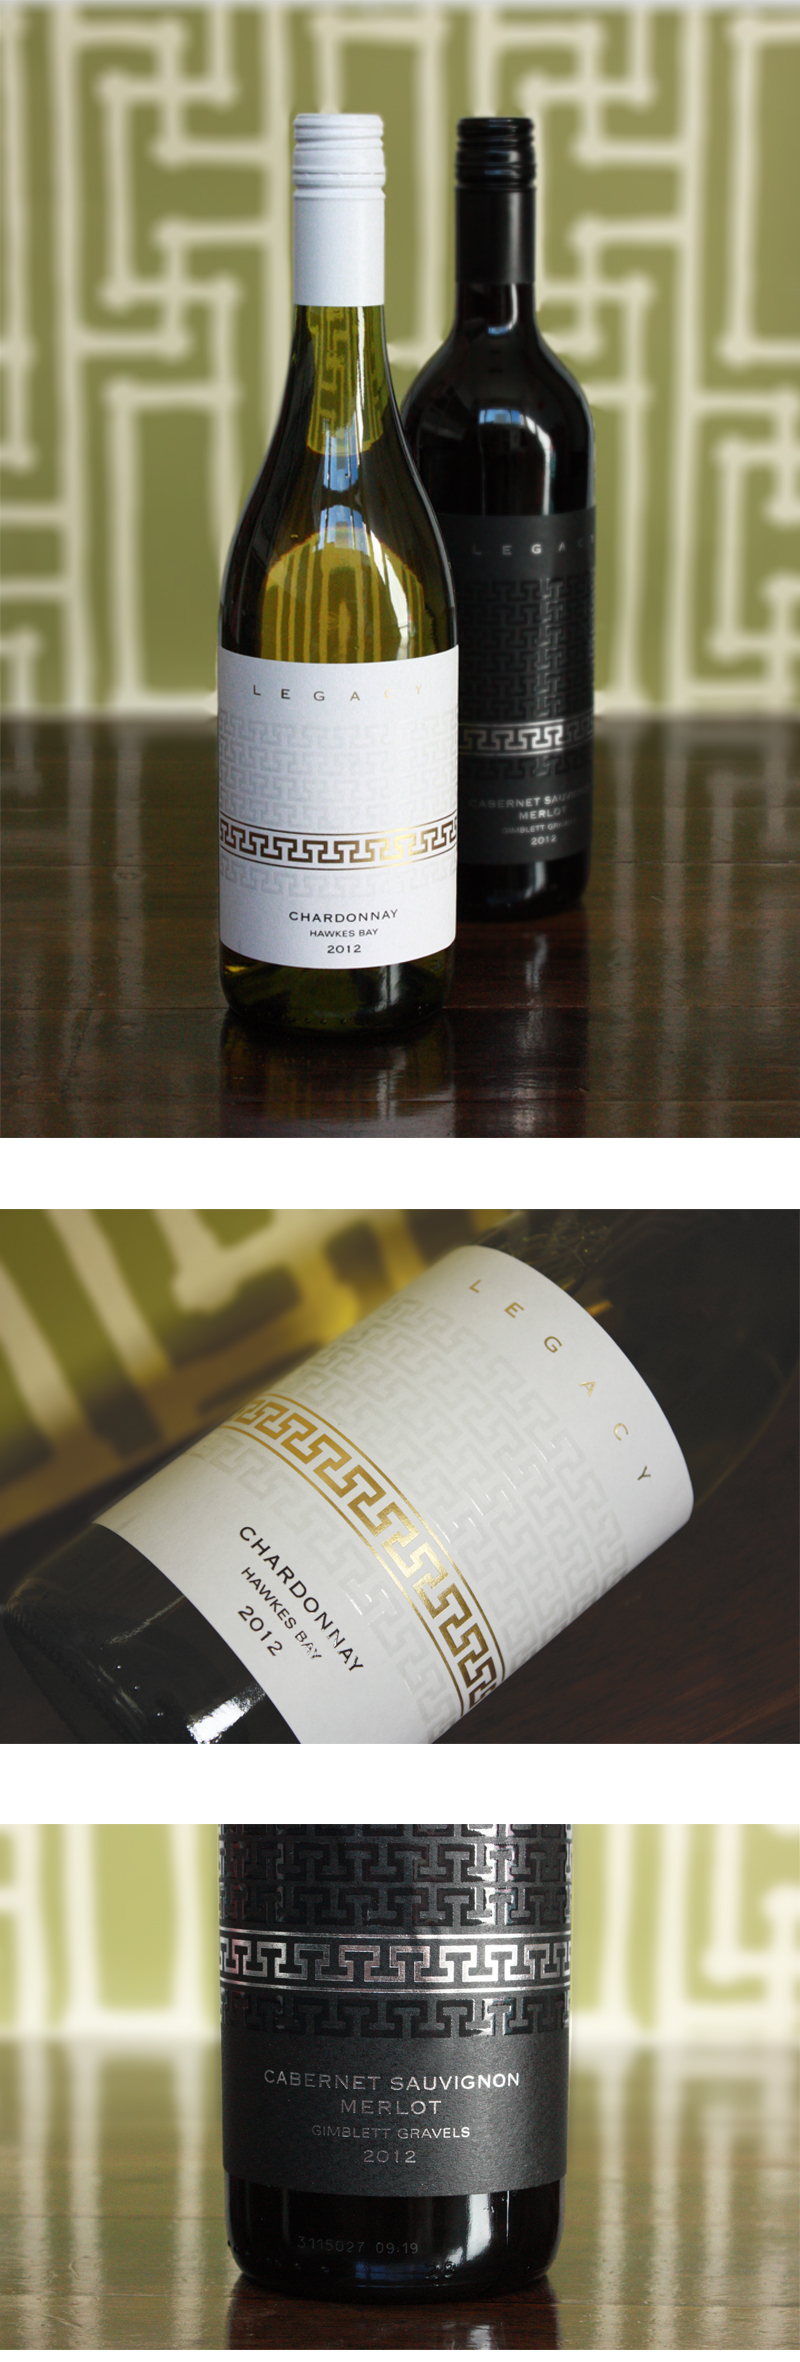 Legacy-Meander-wine-bottles